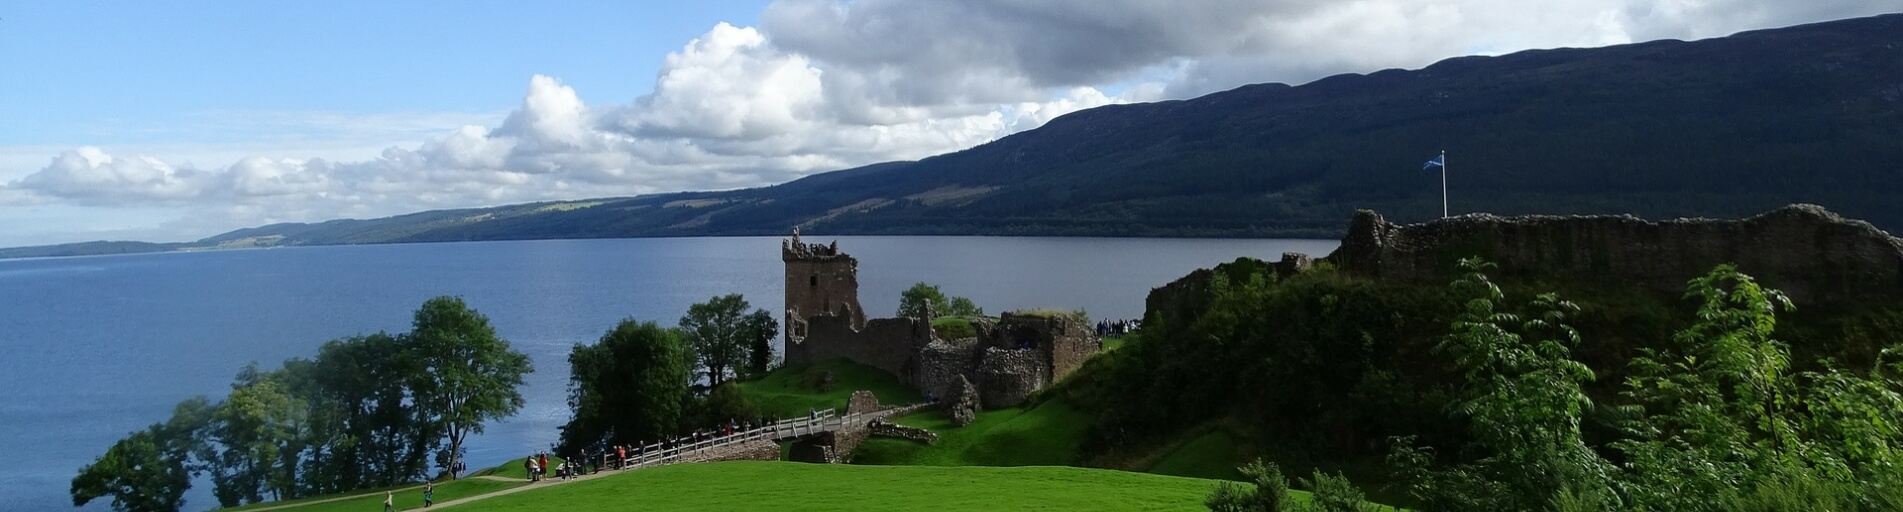 Luxury Cottages overlooking Loch Ness